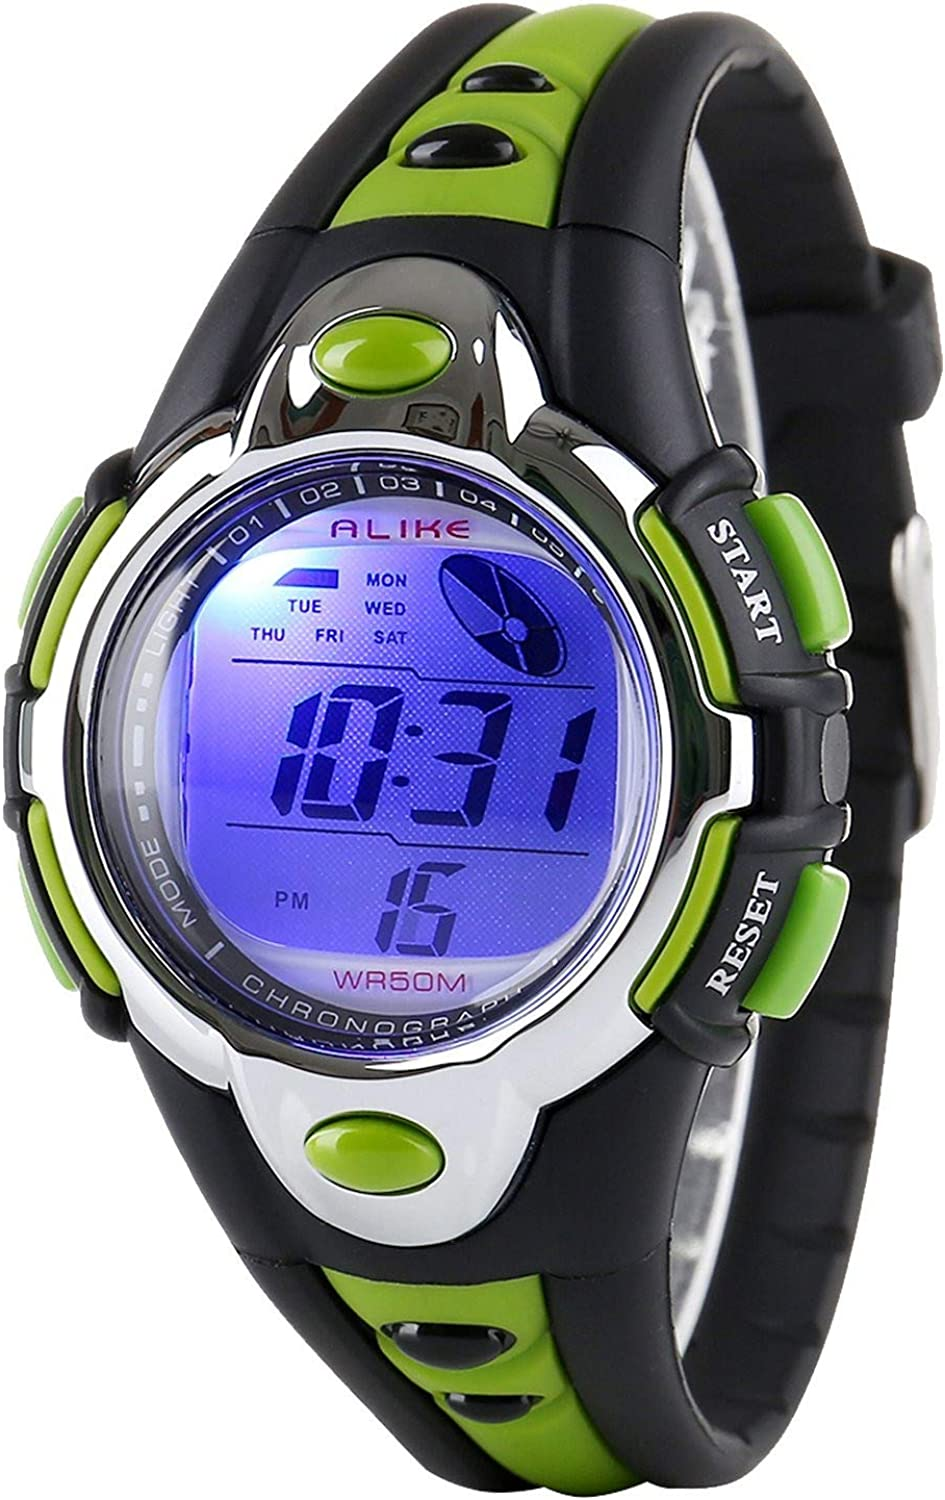 Kids Watches Flash Lights 50m Waterproof Chronograph Digital Sports Watch - Green Color: Watches